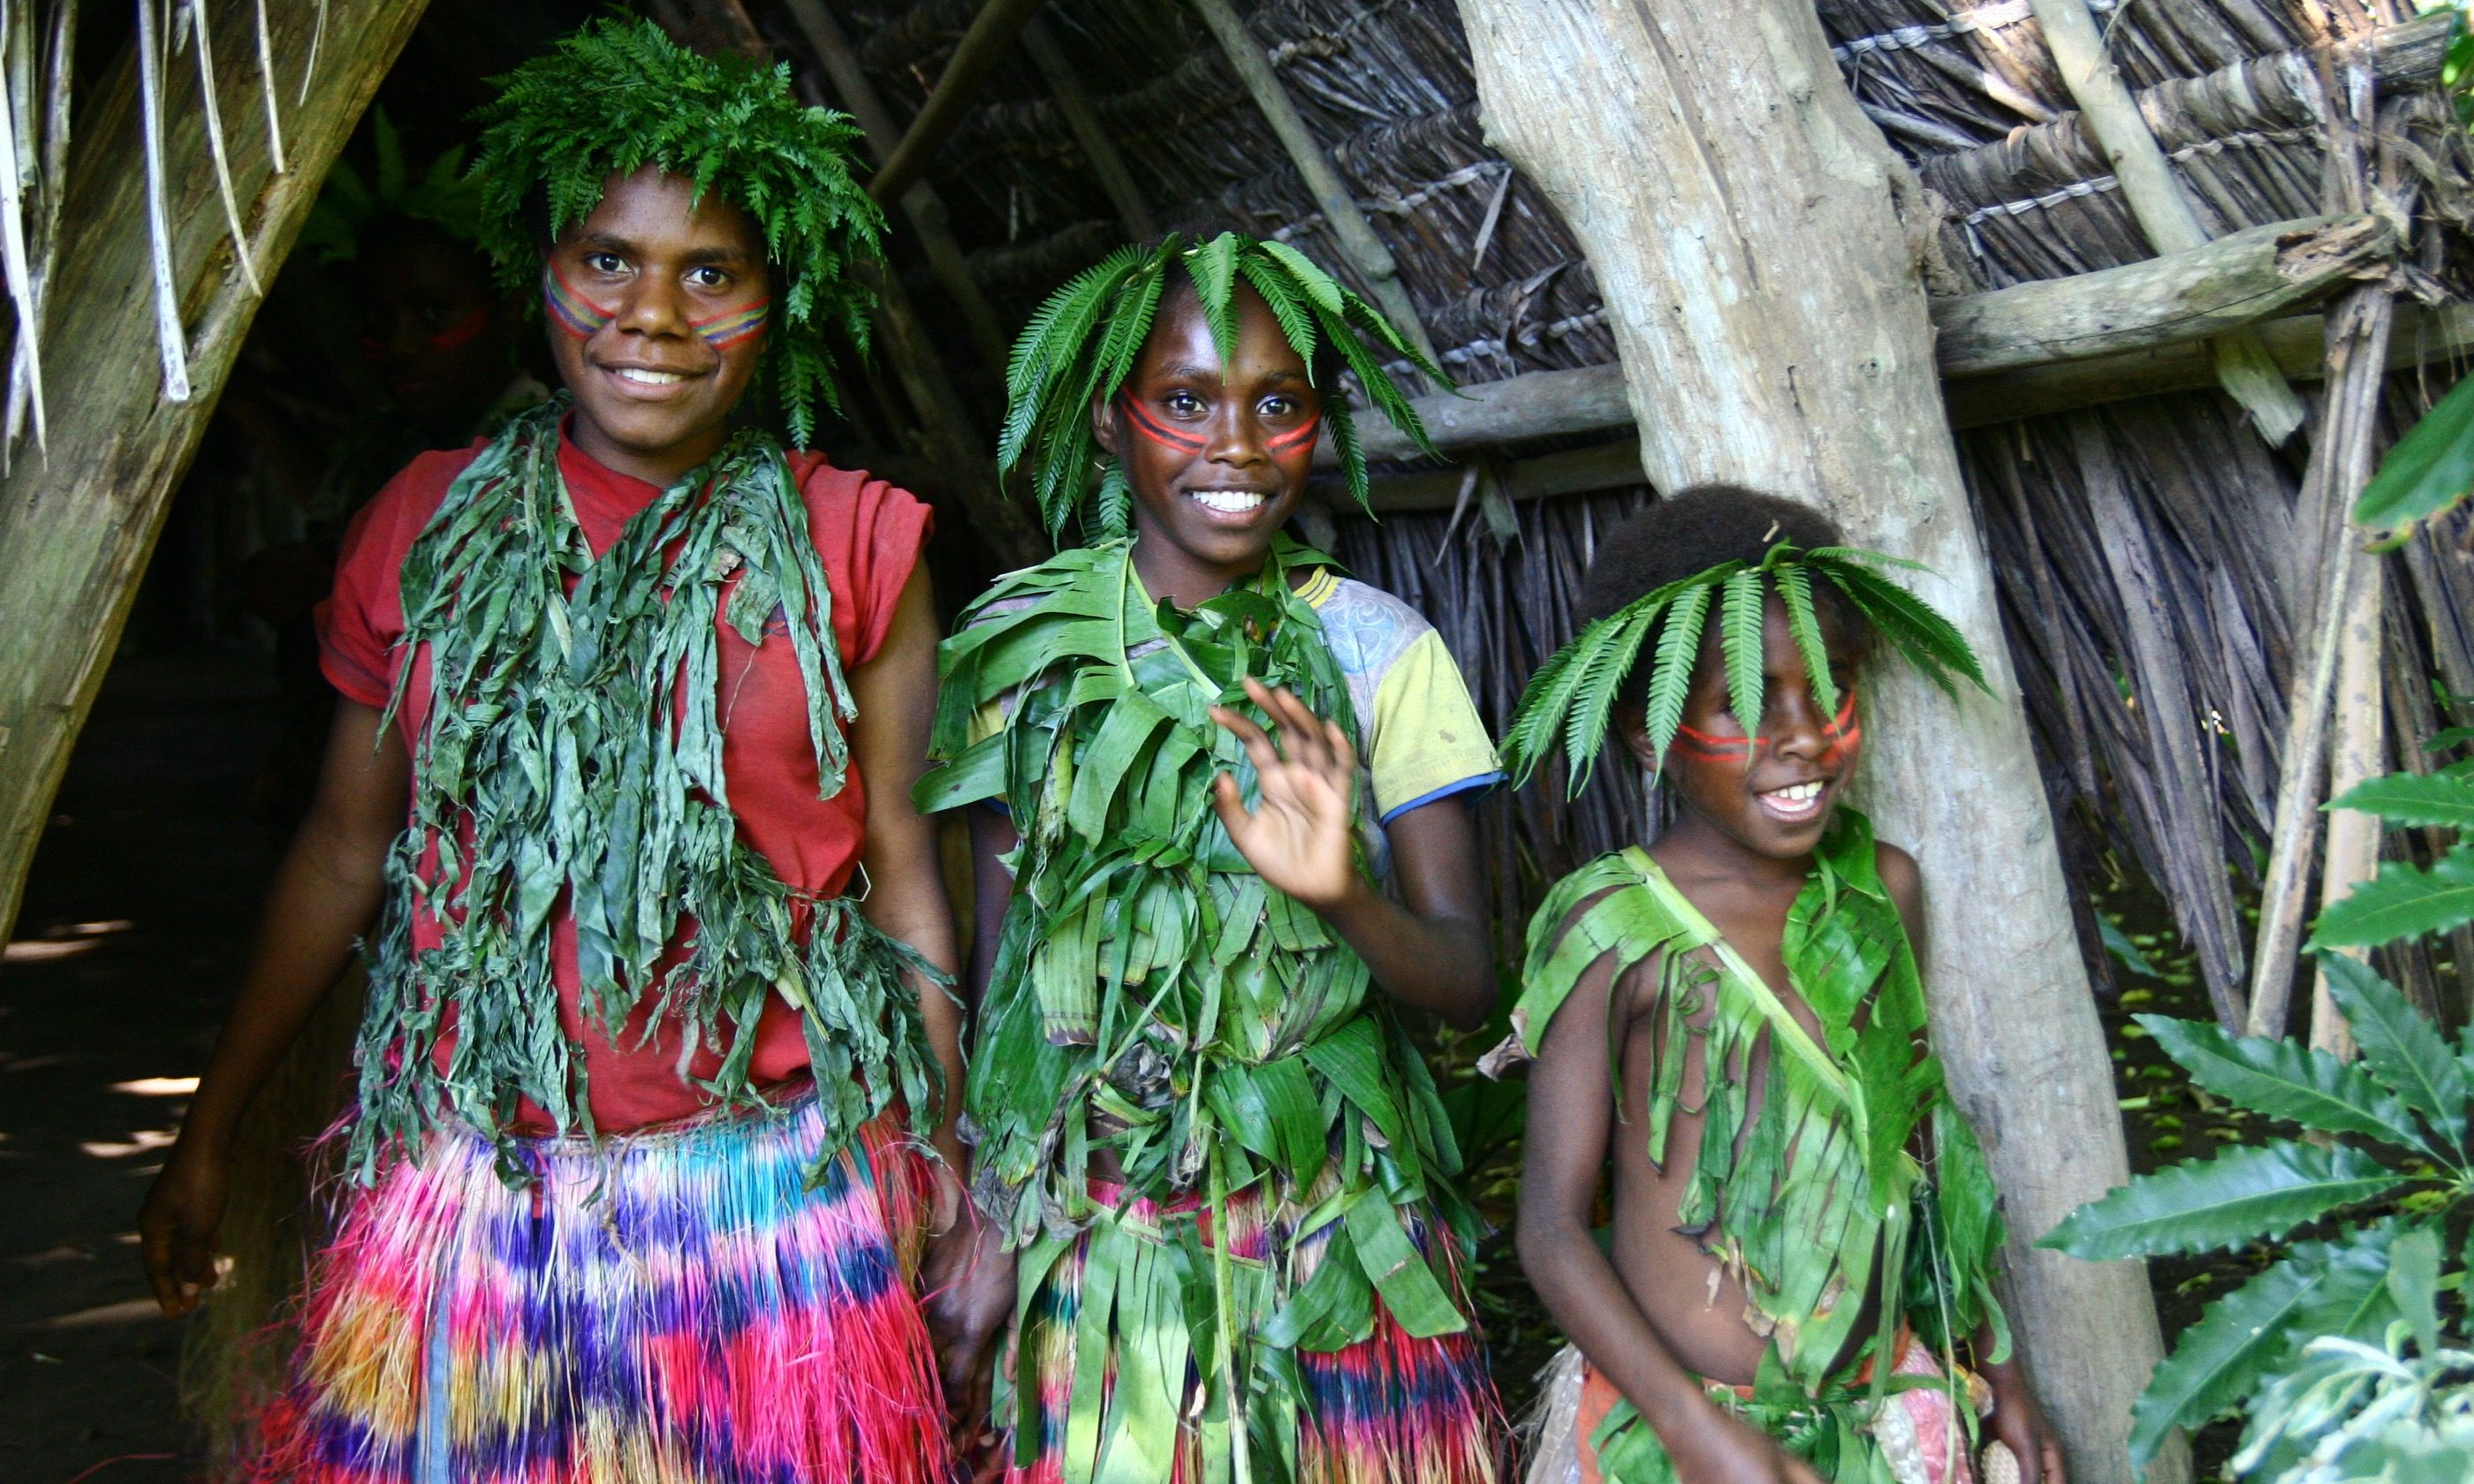 Village girls, Tanna (Dreamstime)